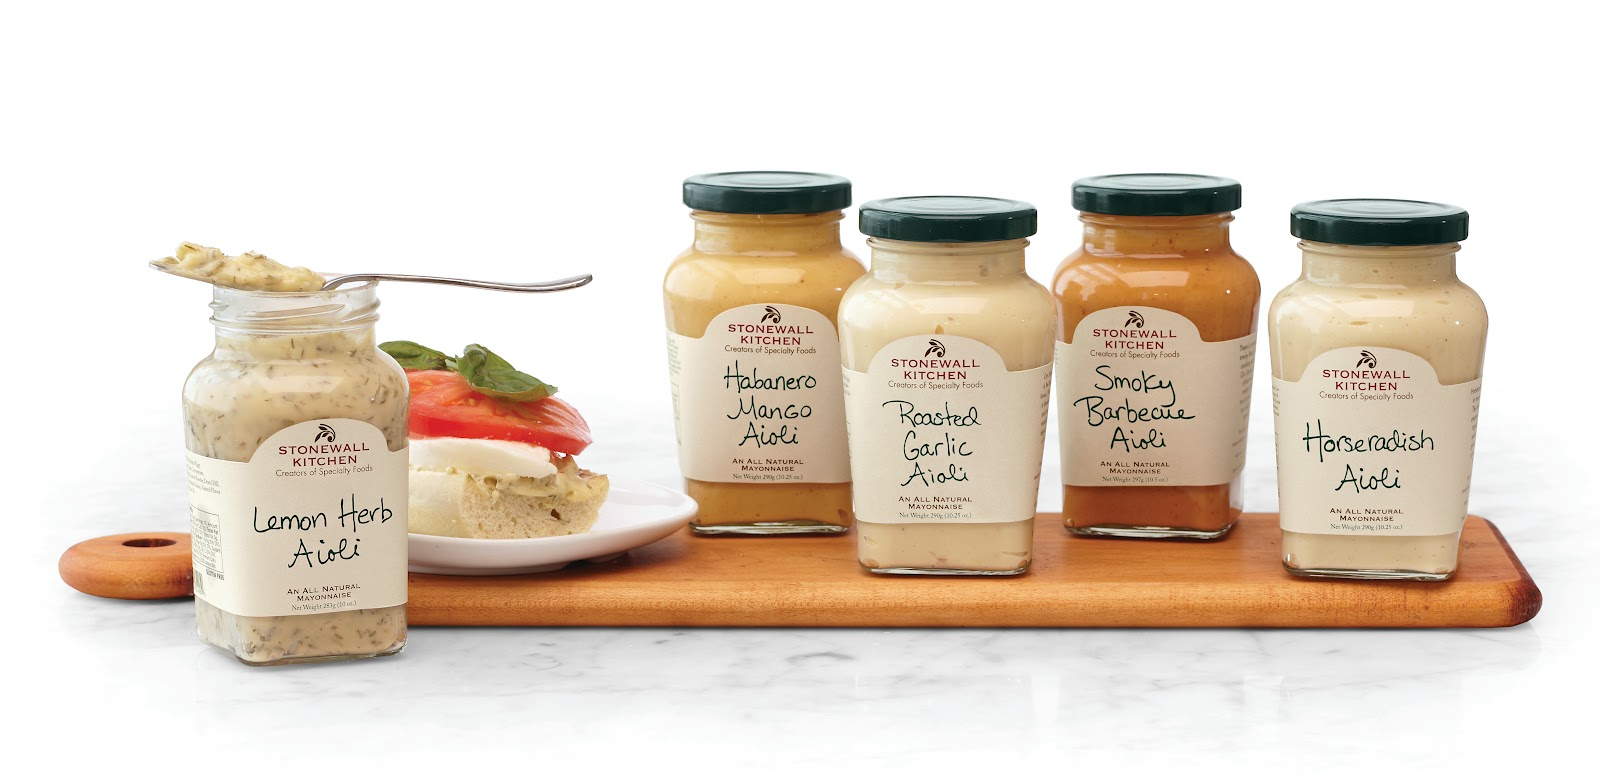 Stonewall Kitchen Aioli Thinking beyond a sandwich spread